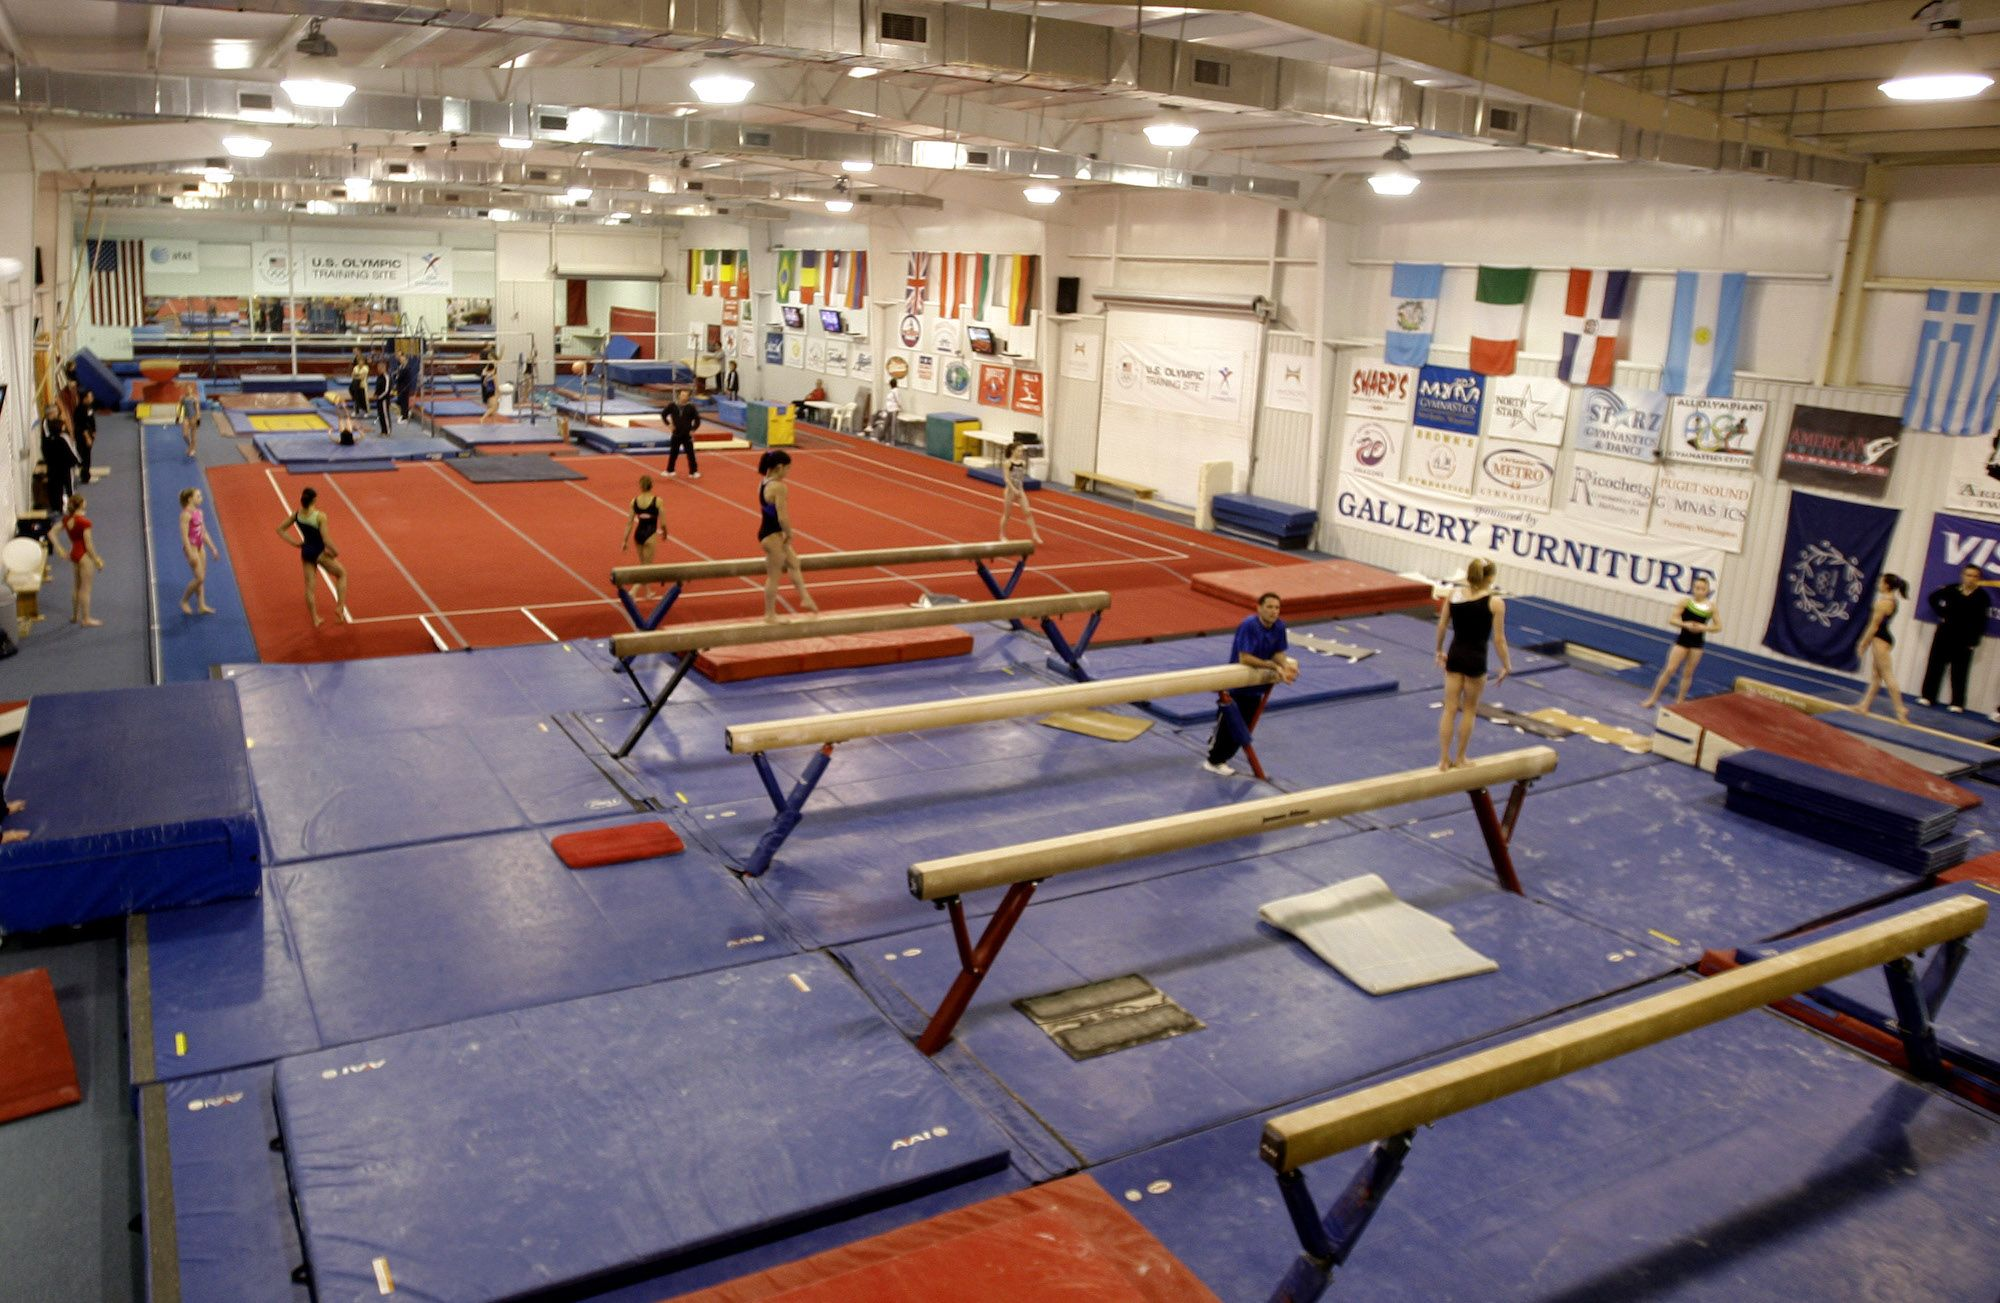 An overview of the inside of the facility